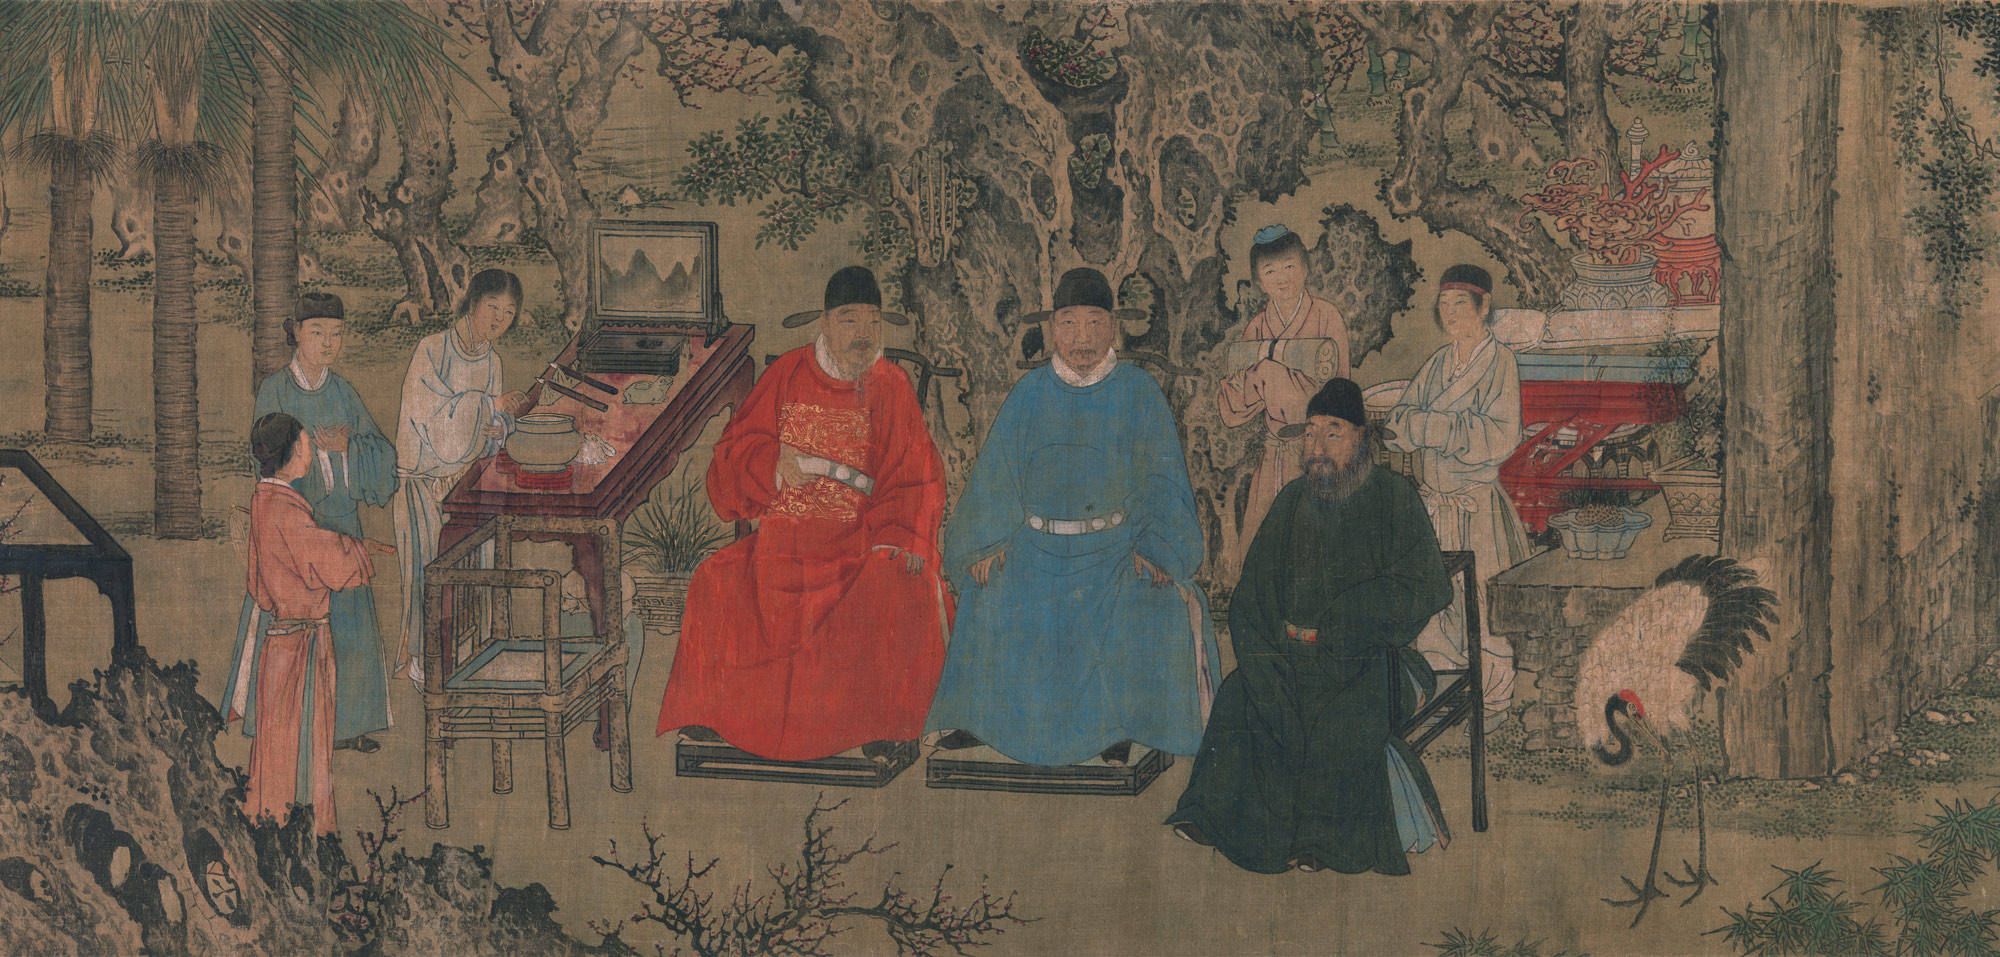 Elegant Gathering in the Apricot Garden